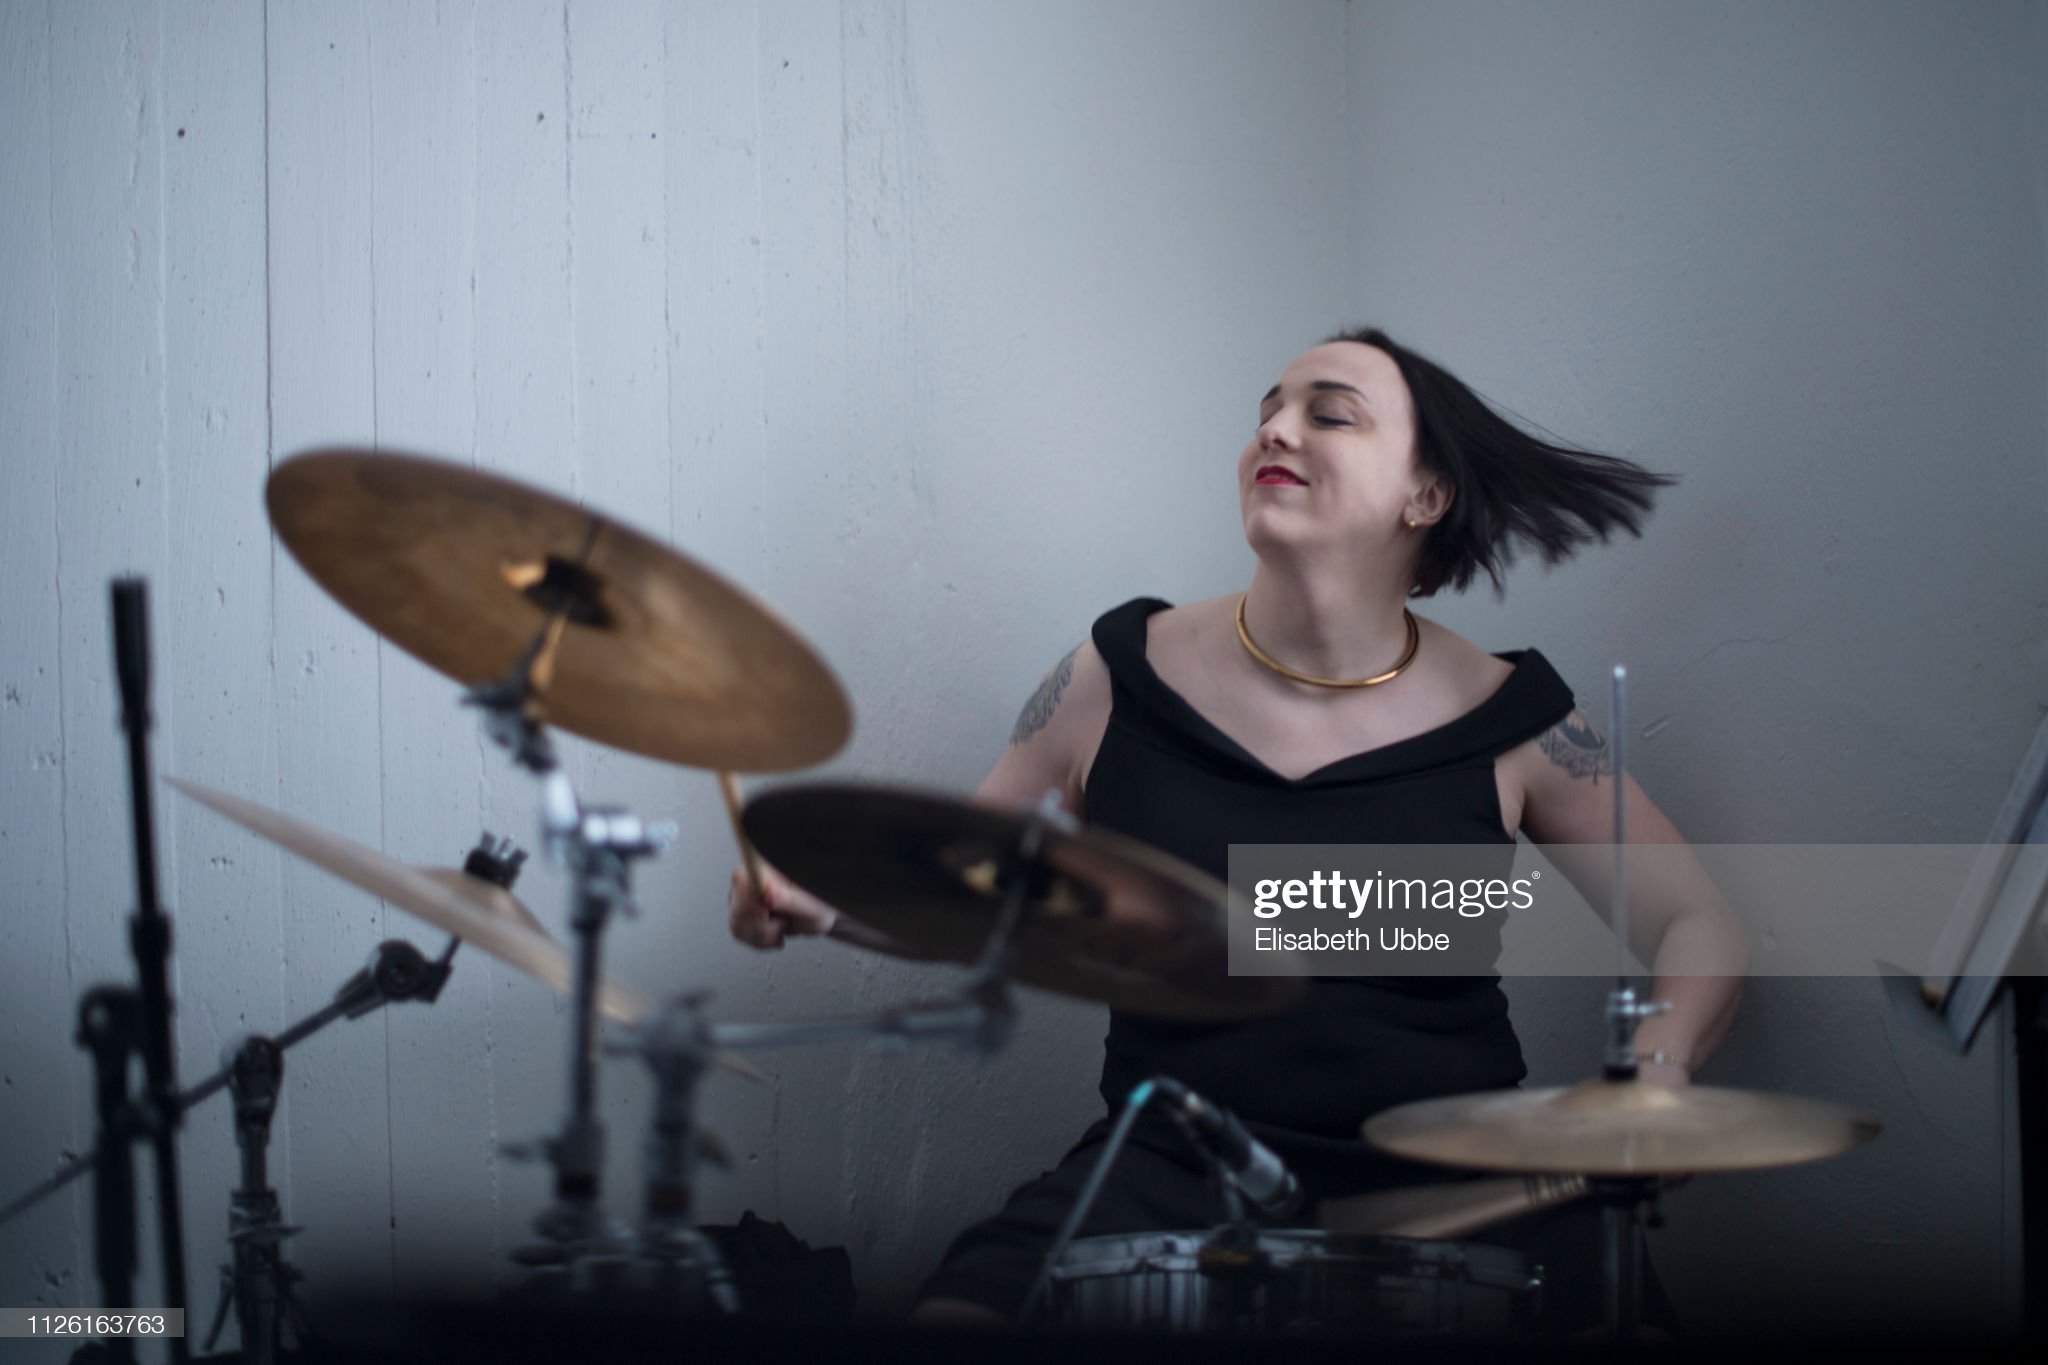 Trans woman playing drums : Stock Photo